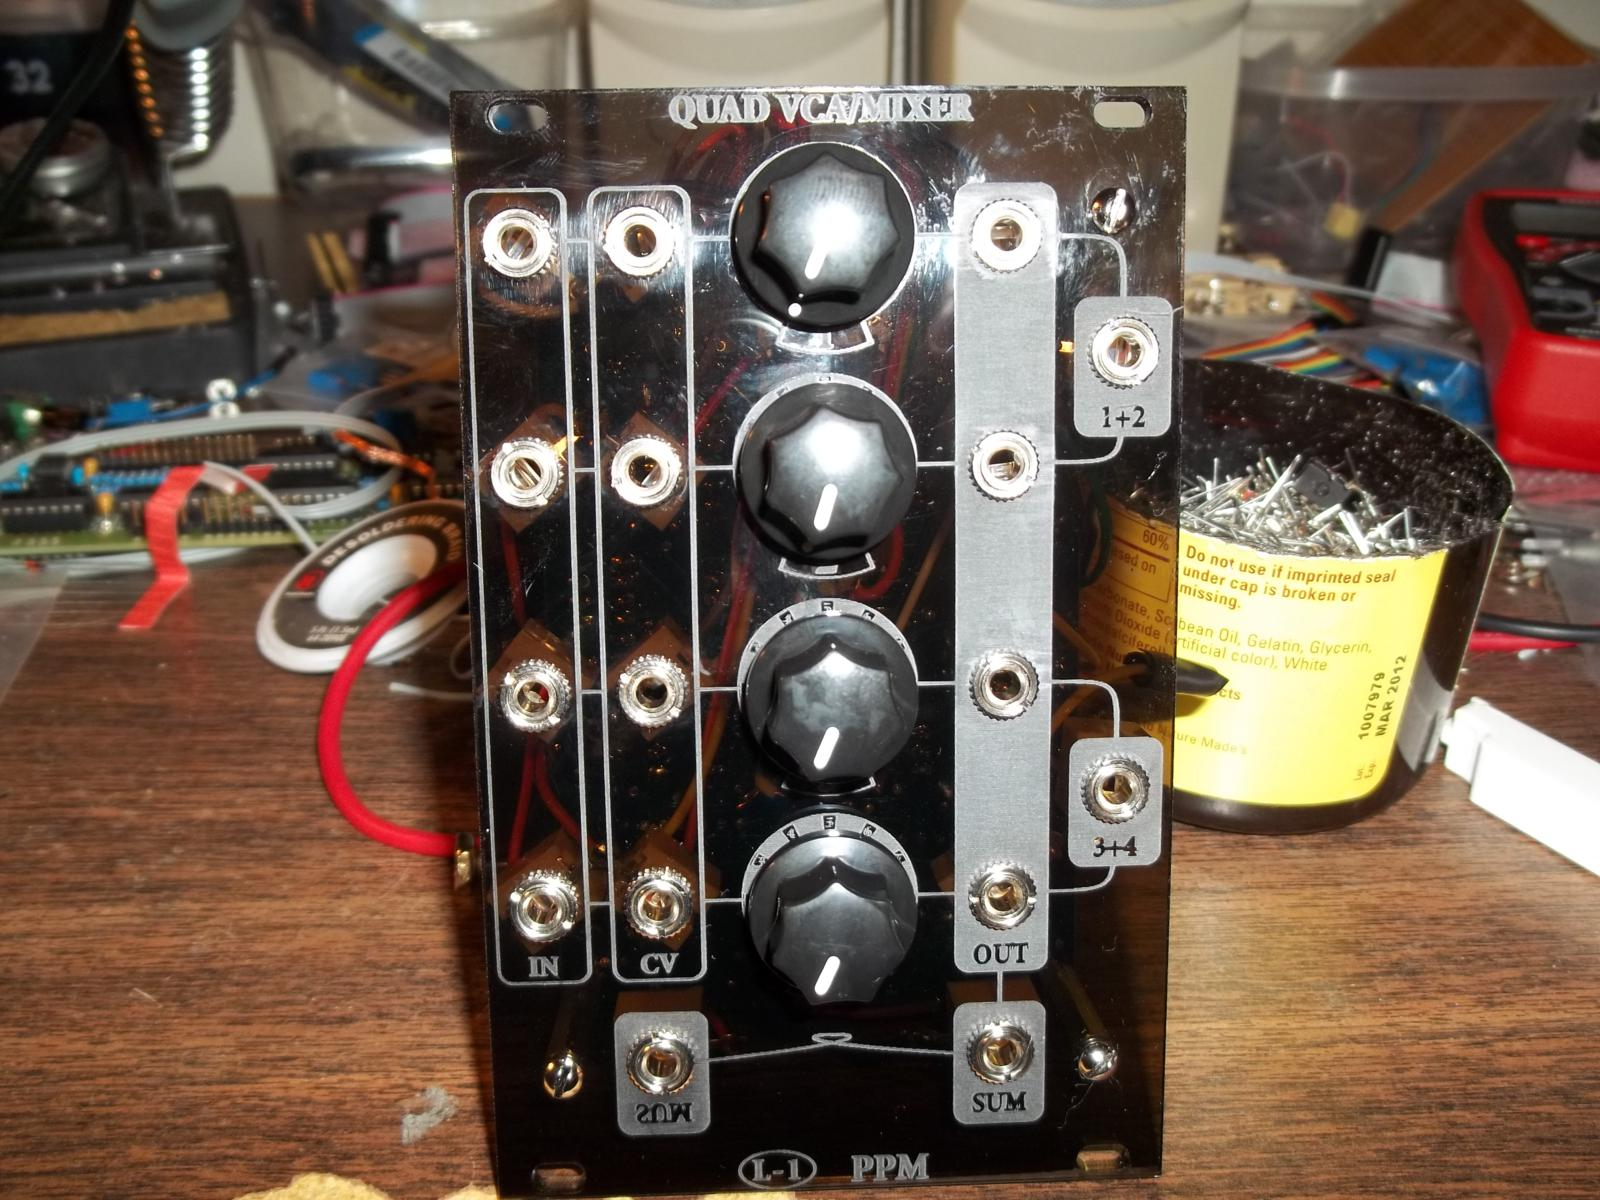 Quad VCA / Mixer by L-1 Synthesizer